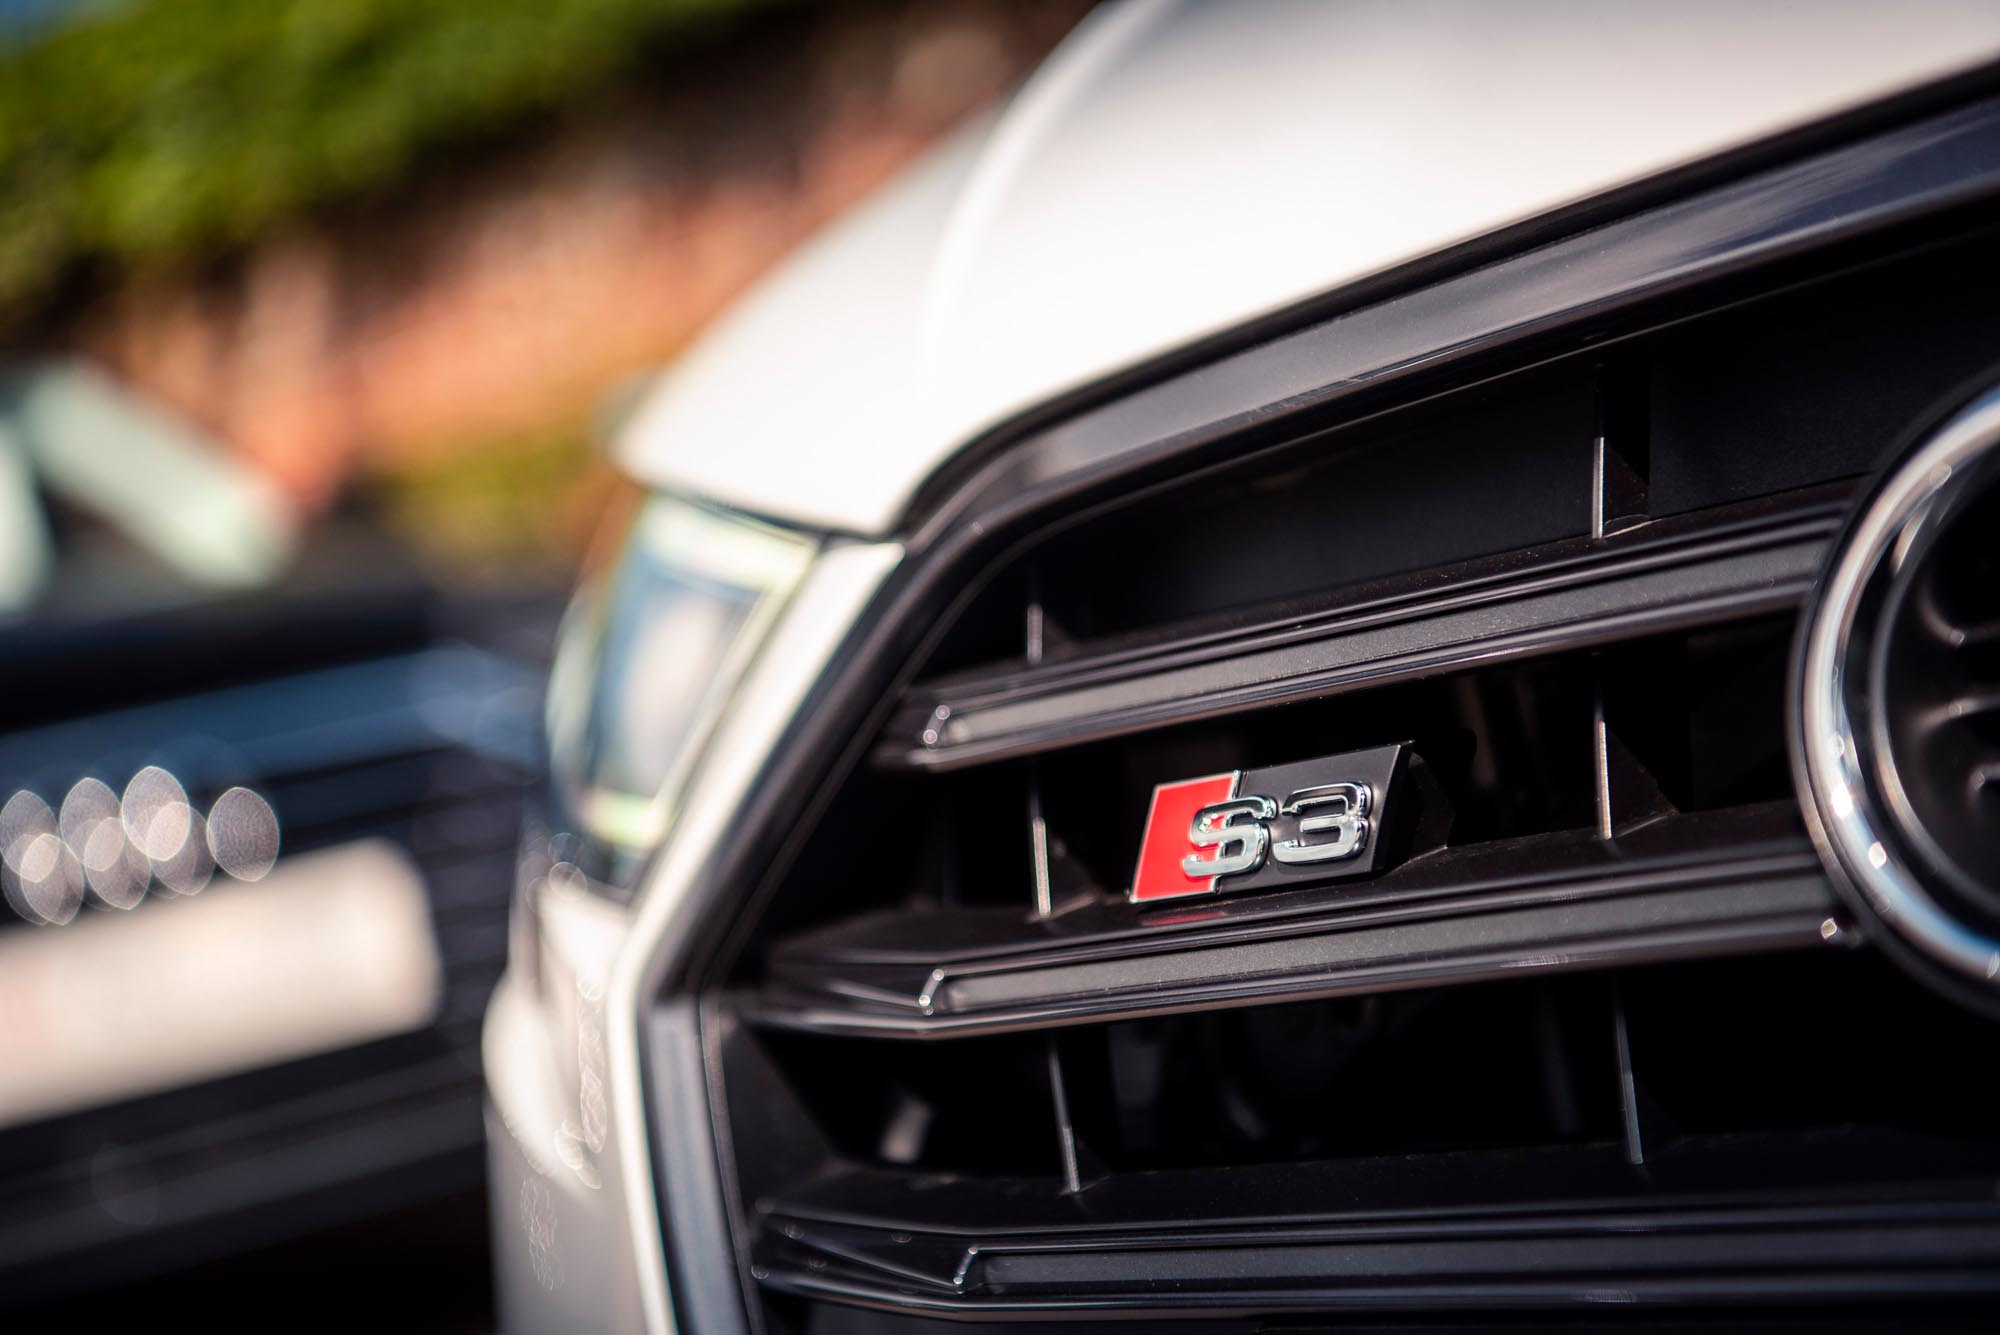 Audi S3 Photographed for Leeds Audi Yorkshire